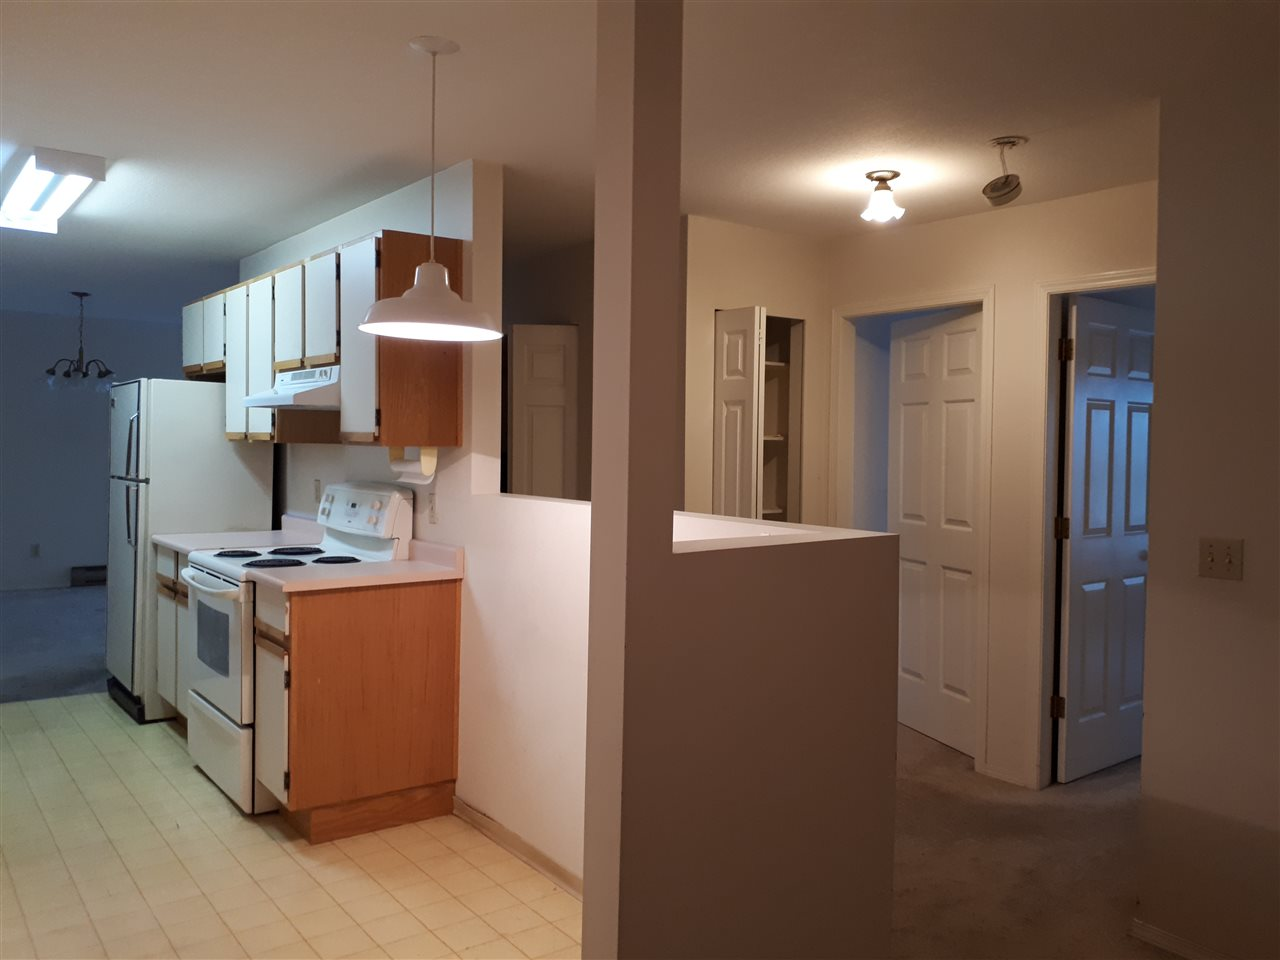 Condo Apartment at 202 9175 EDWARD STREET, Unit 202, Chilliwack, British Columbia. Image 4